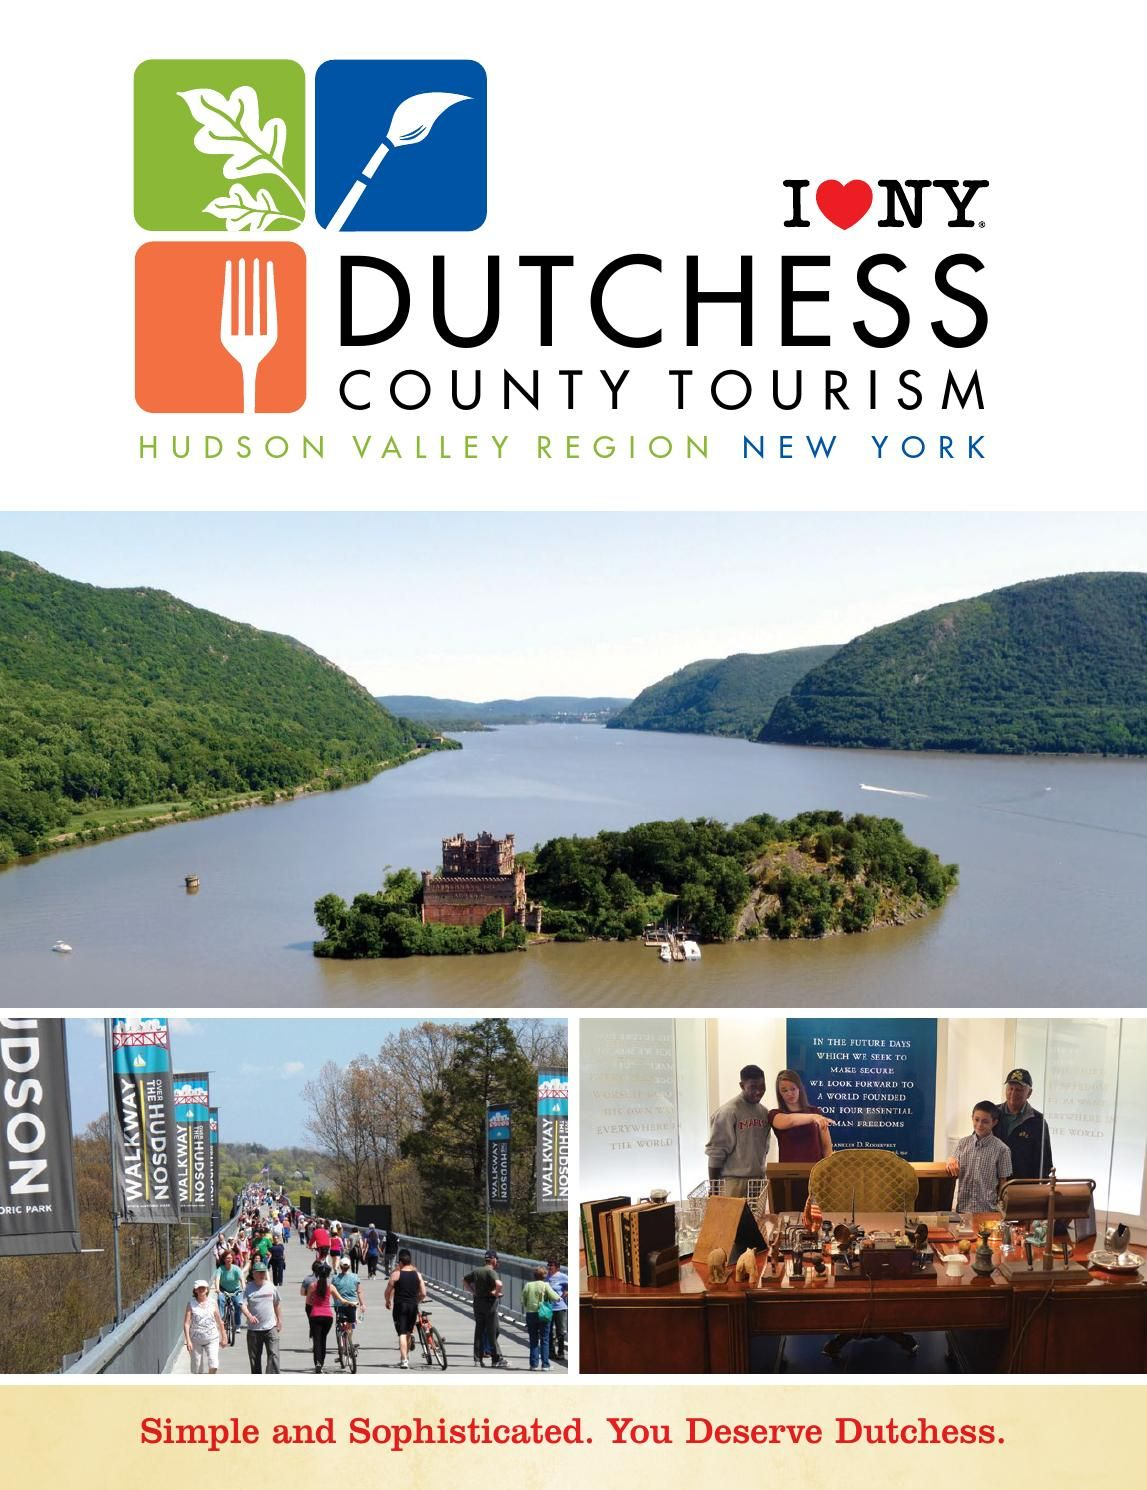 2014 dutchess county tourism travel guide pinterest tourism rh pinterest com Travel Brochure Travel Guide Examples